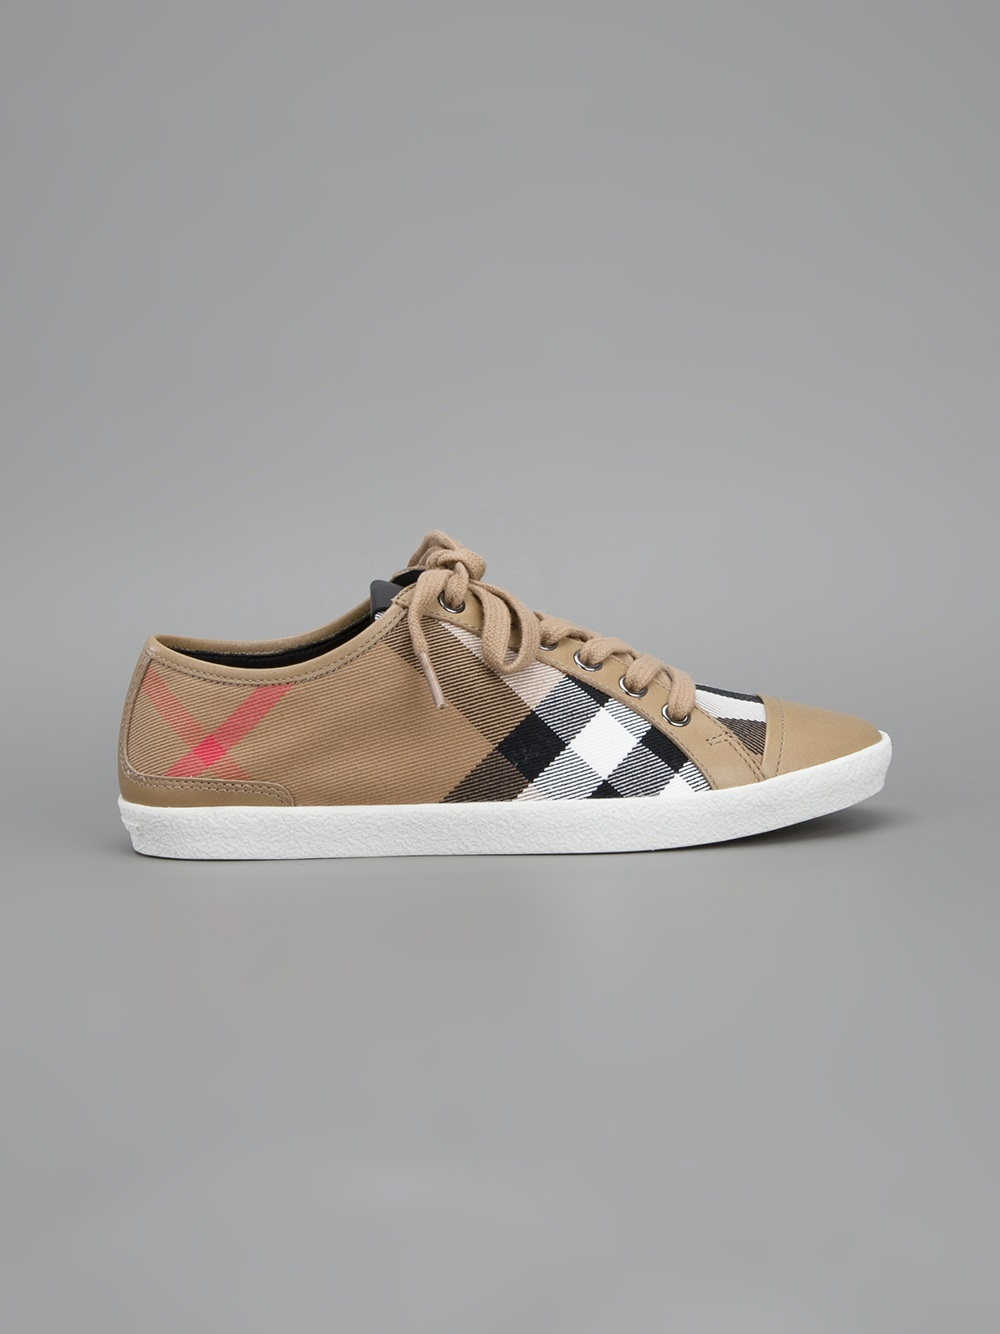 Lyst Burberry Nova Checked Sneakers In Brown